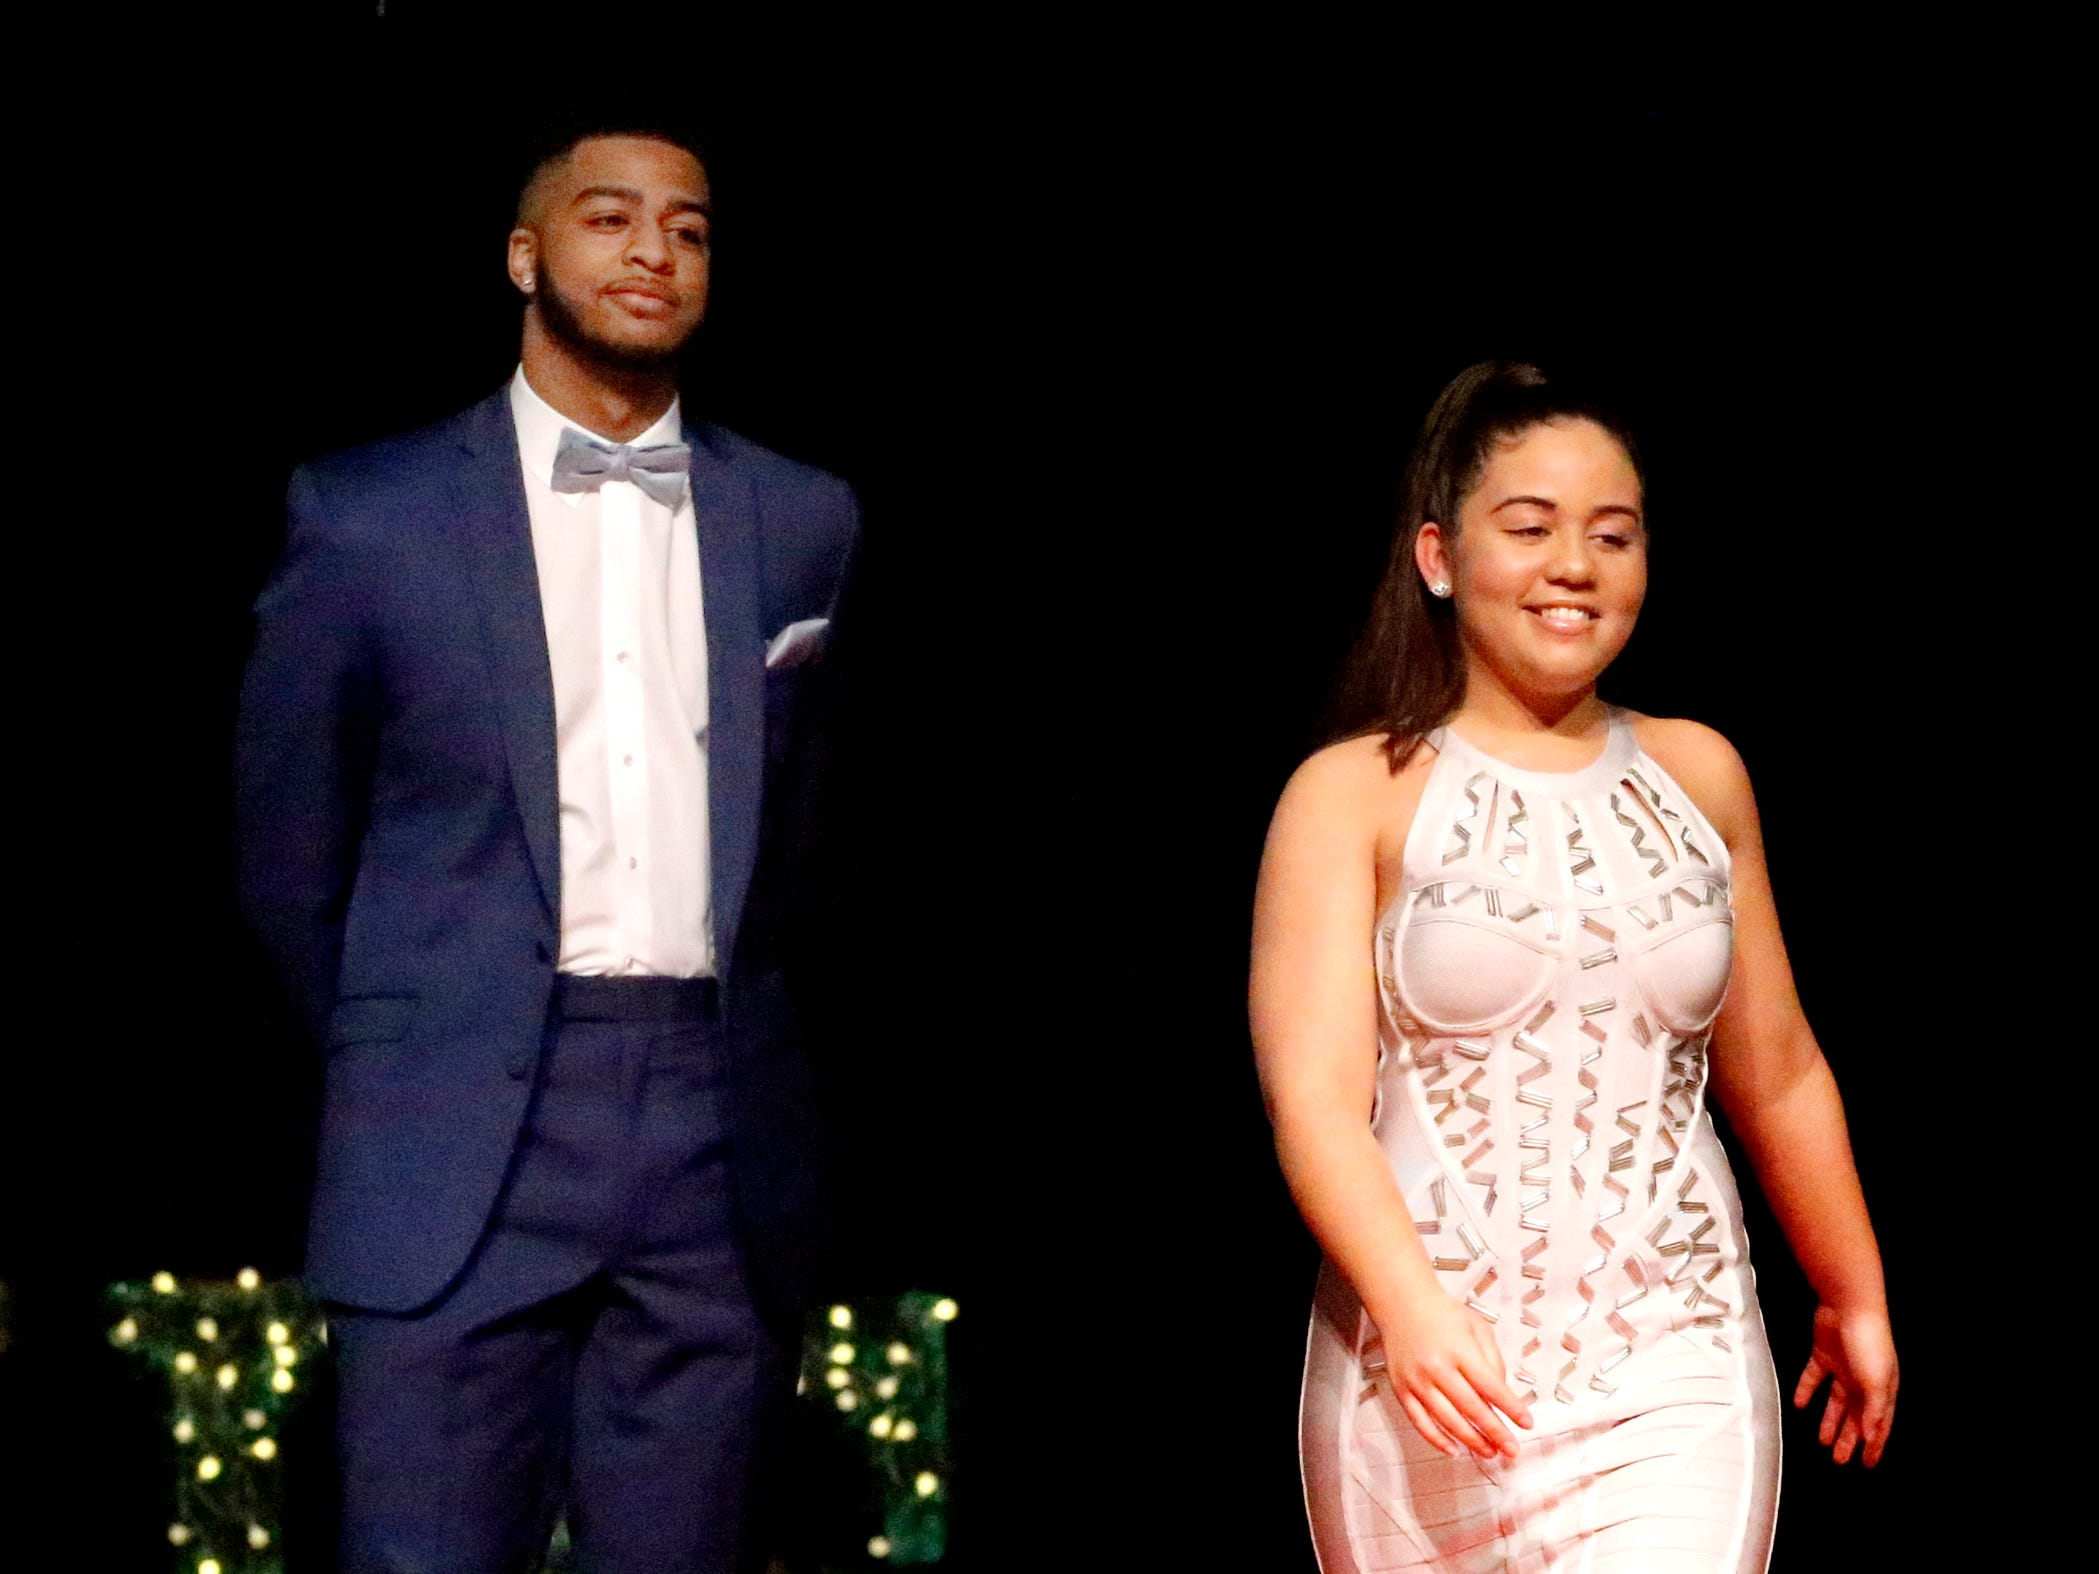 Joseph Howard, left and Sierra Cruz, right show off the latest in prom fashions during the Siegel Prom Fashion show on Thursday, Feb. 14, 2019.